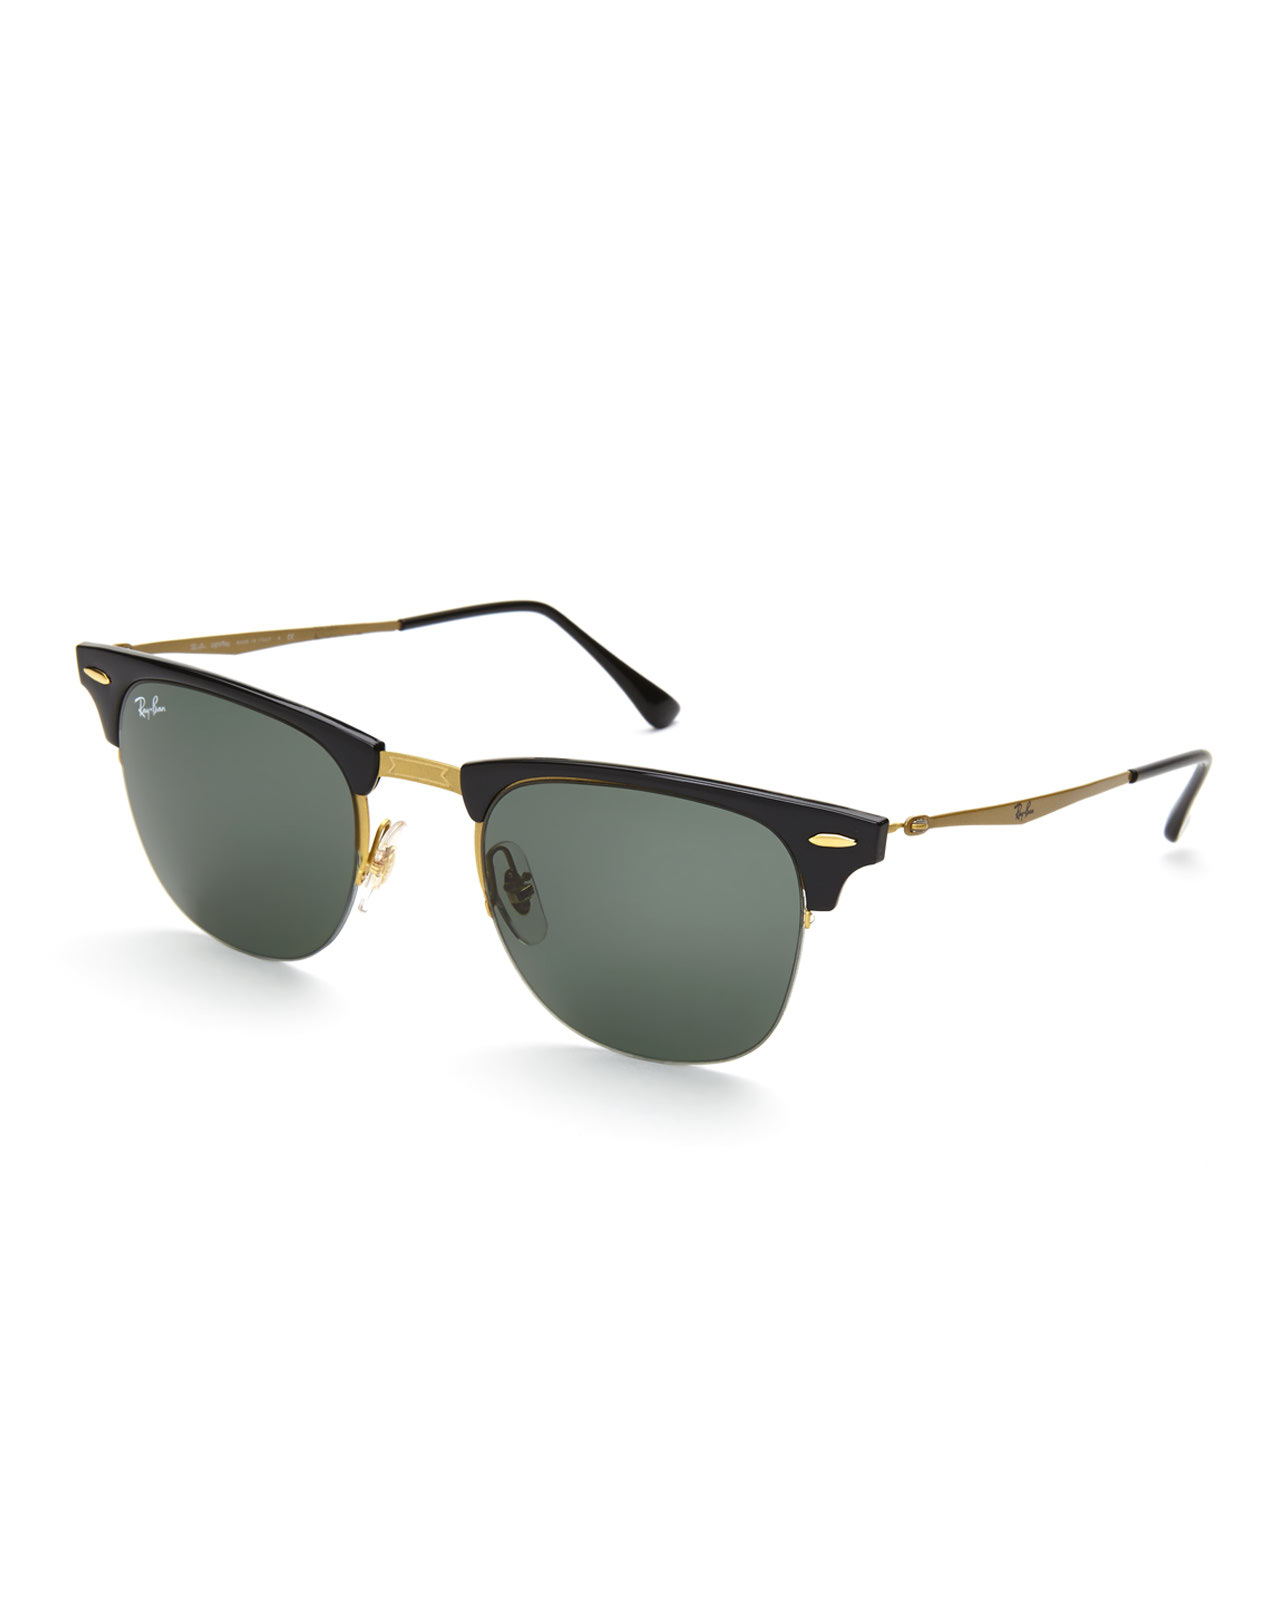 ray ban sunglasses golden  ray ban sunglasses black and gold